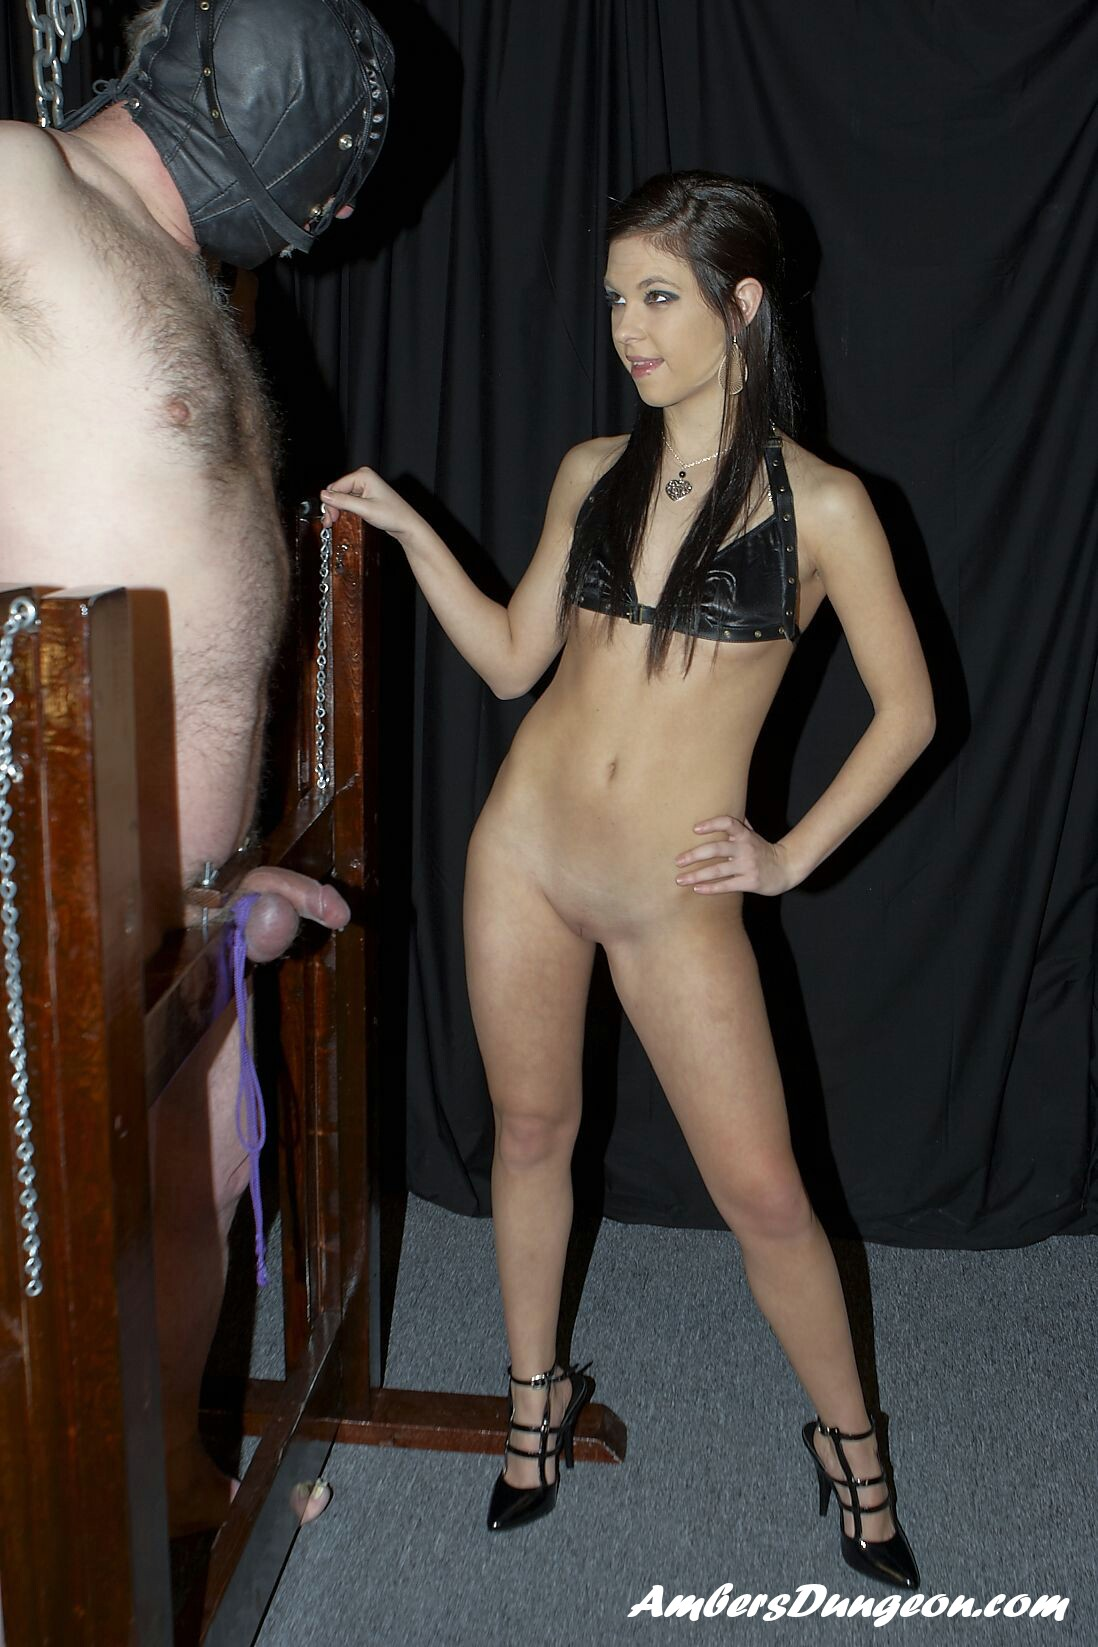 Youthful Mistress Lexi enjoys anguish